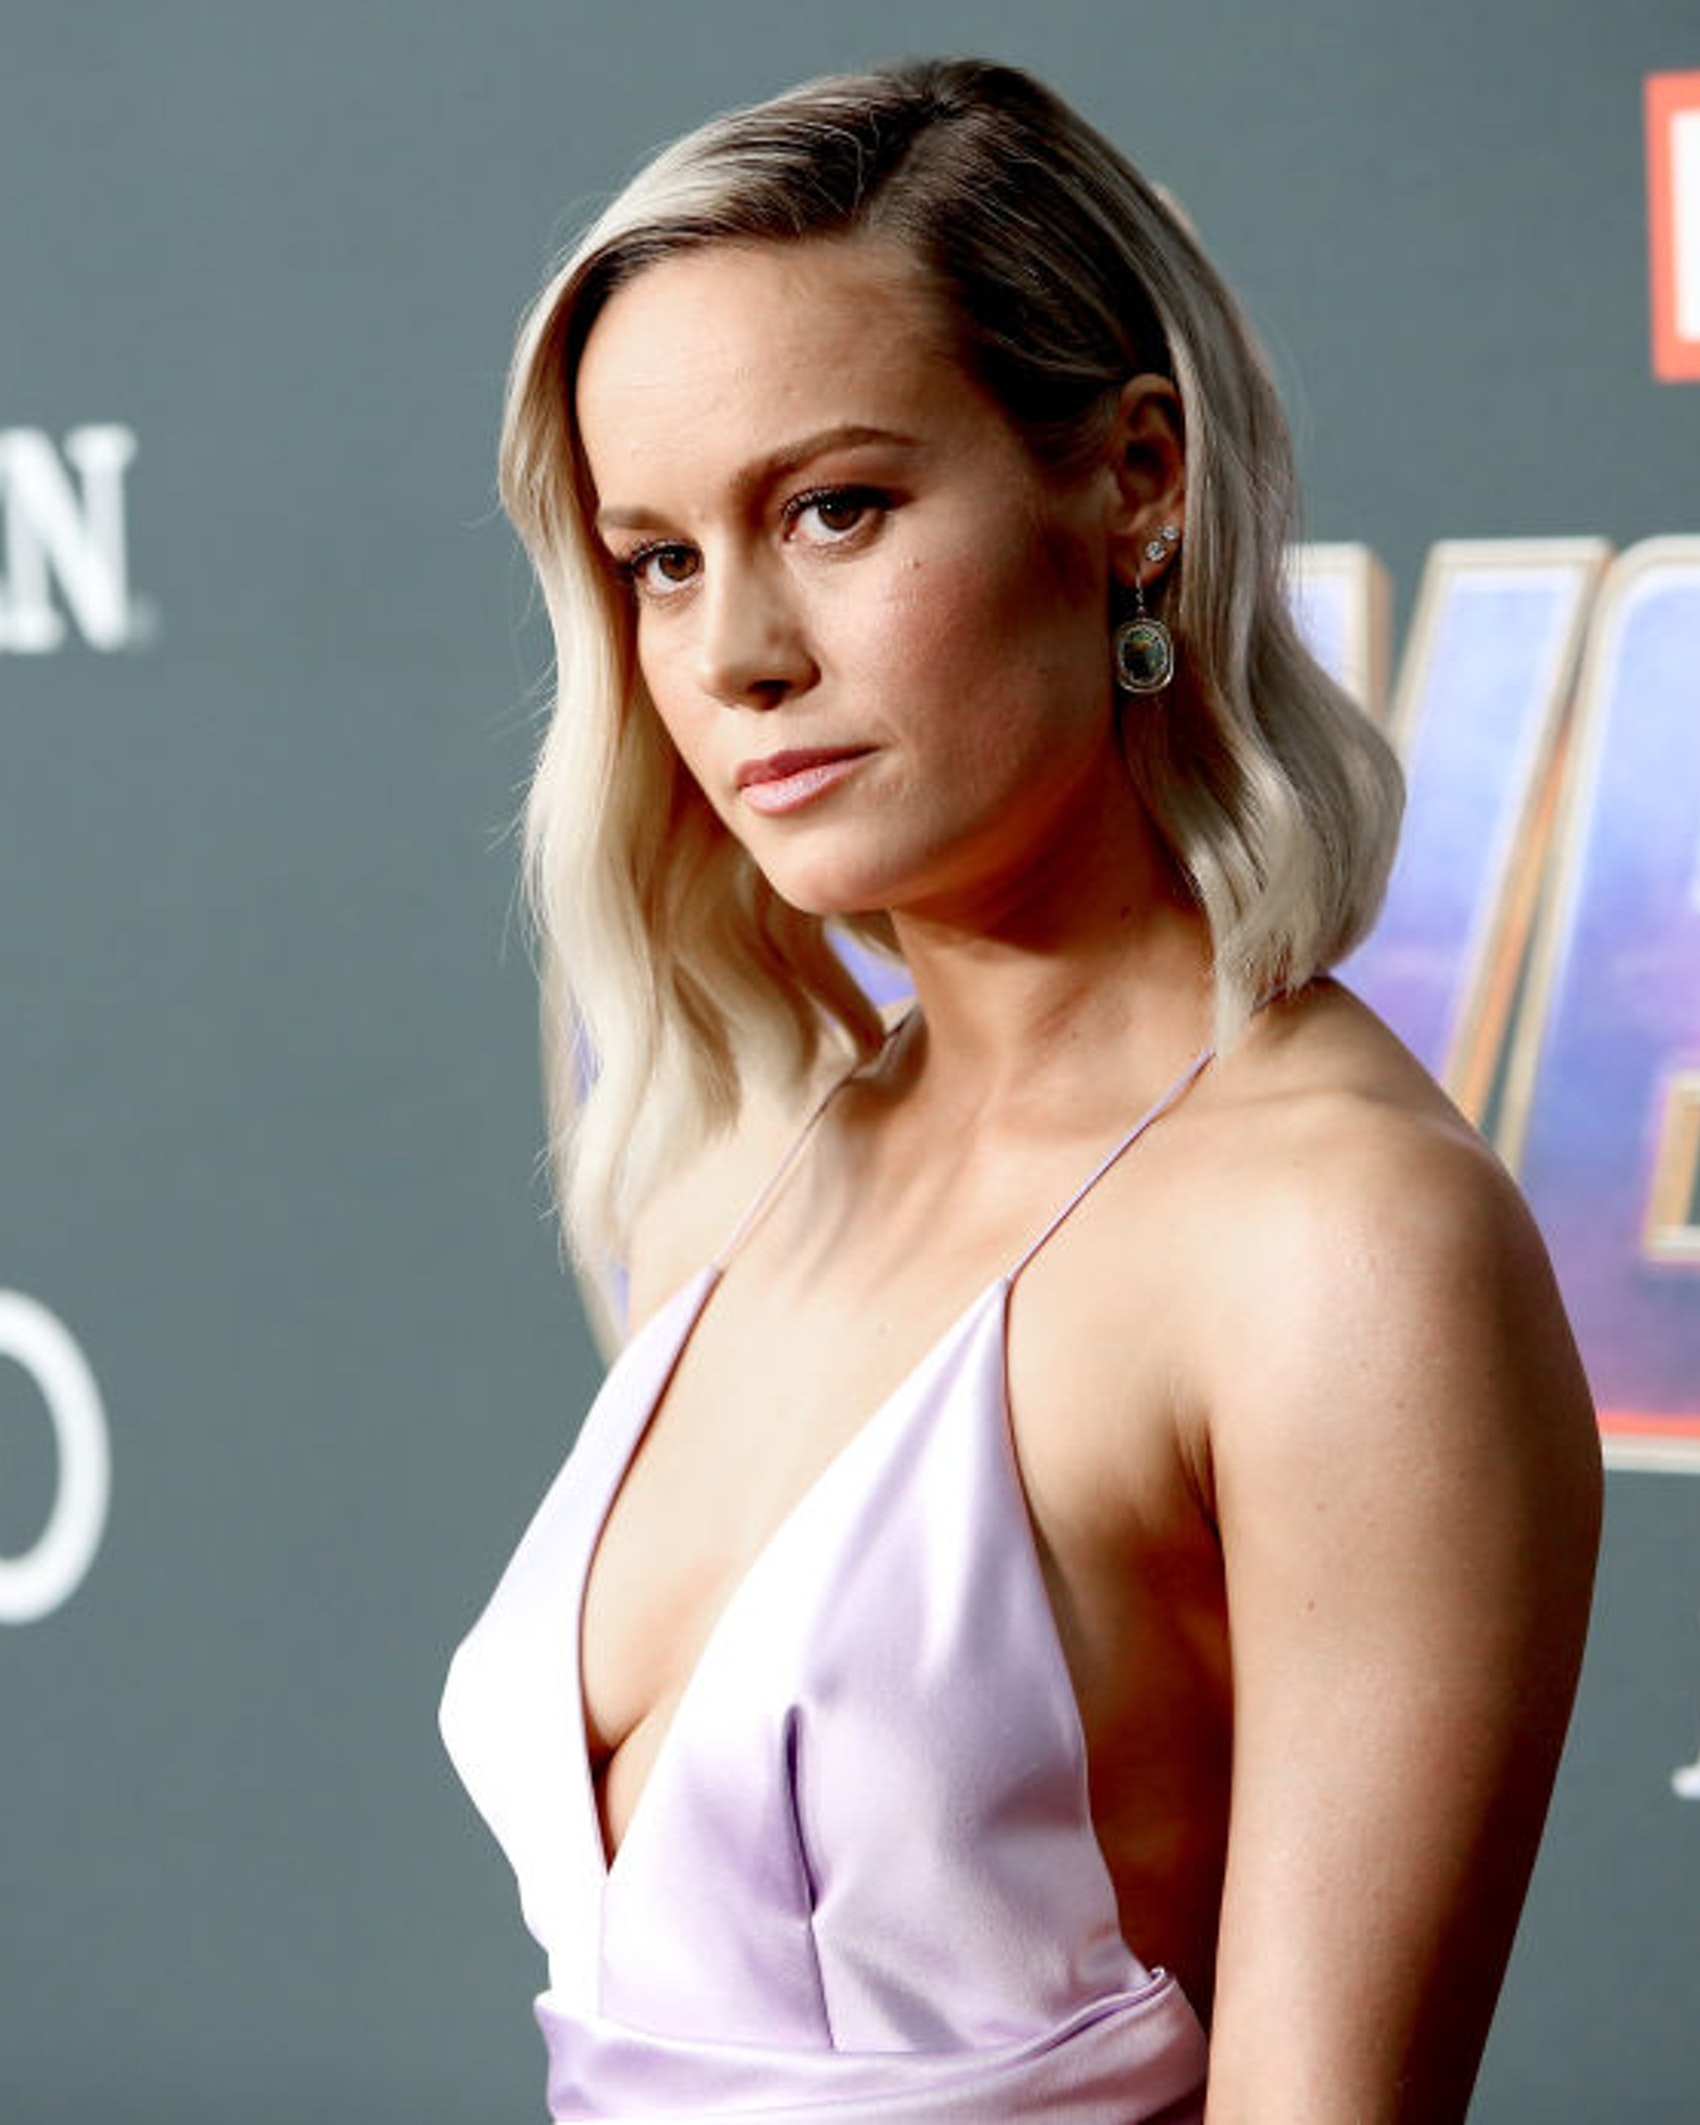 """LOS ANGELES, CA - APRIL 22: Brie Larson attends the Los Angeles World Premiere of Marvel Studios' """"Avengers: Endgame"""" at the Los Angeles Convention Center on April 23, 2019 in Los Angeles, California. (Photo by Jesse Grant/Getty Images for Disney)"""